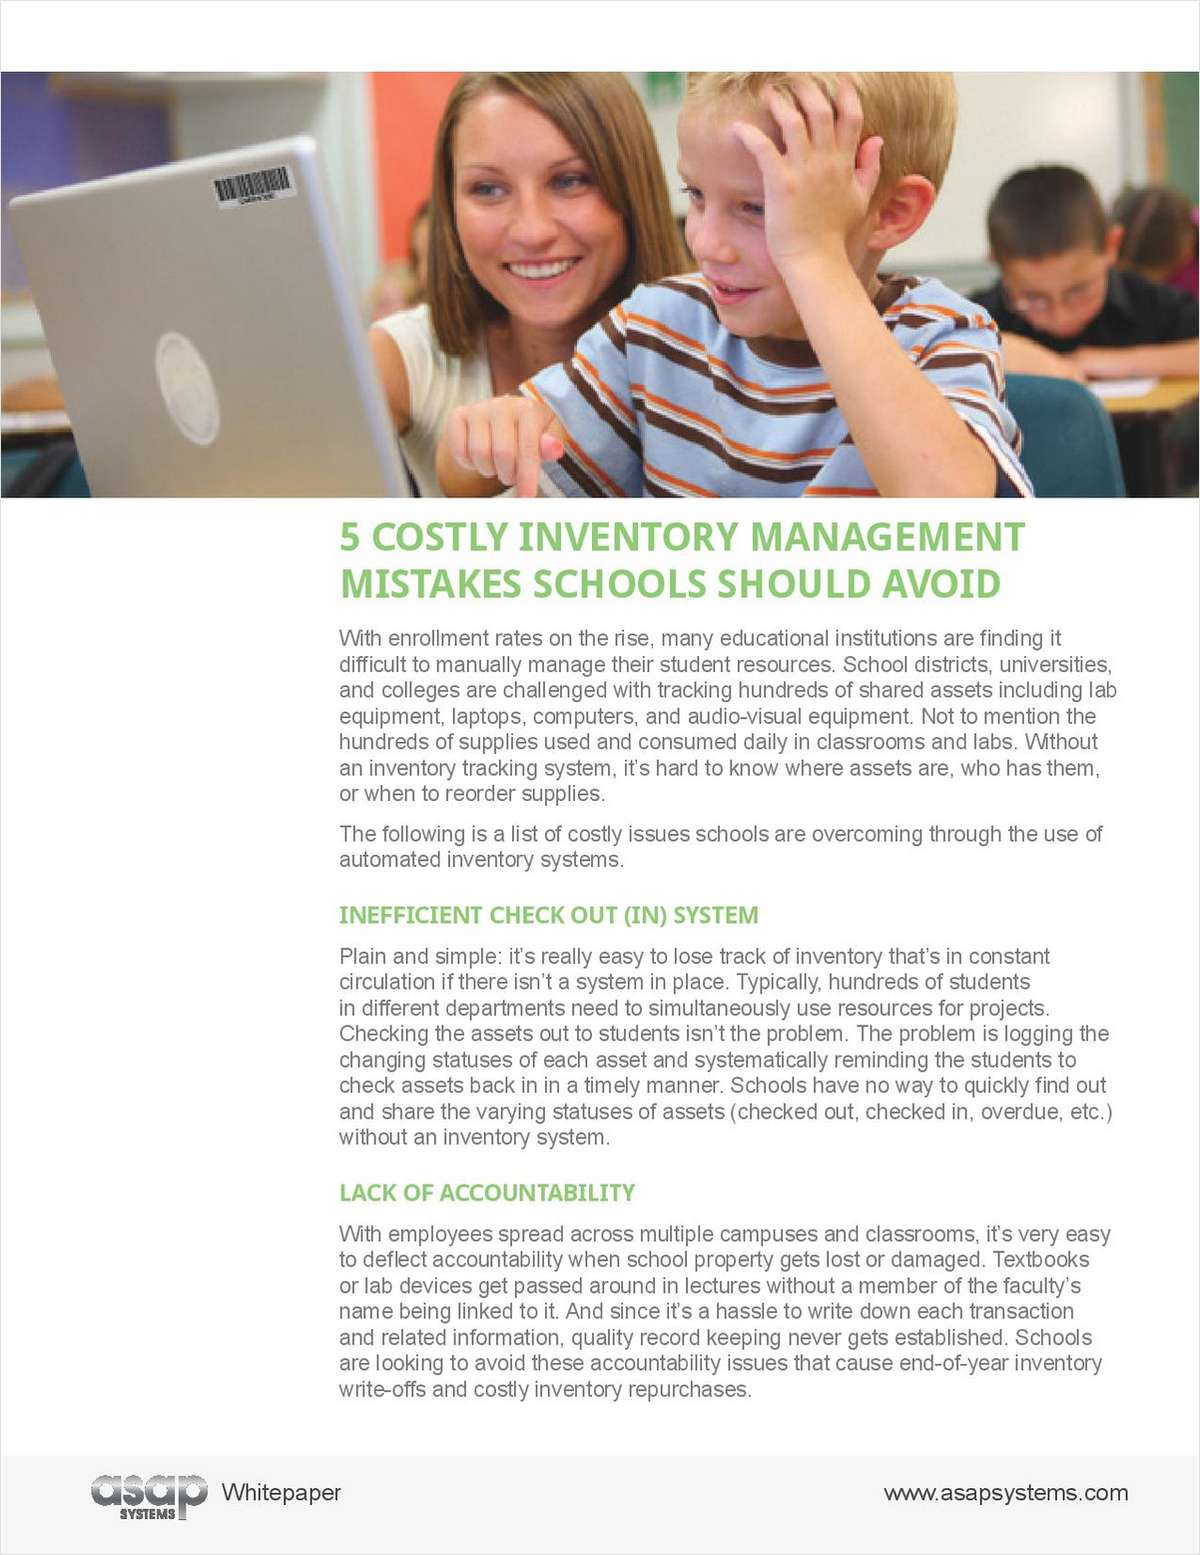 5 Costly Inventory Management Mistakes Schools Should Avoid